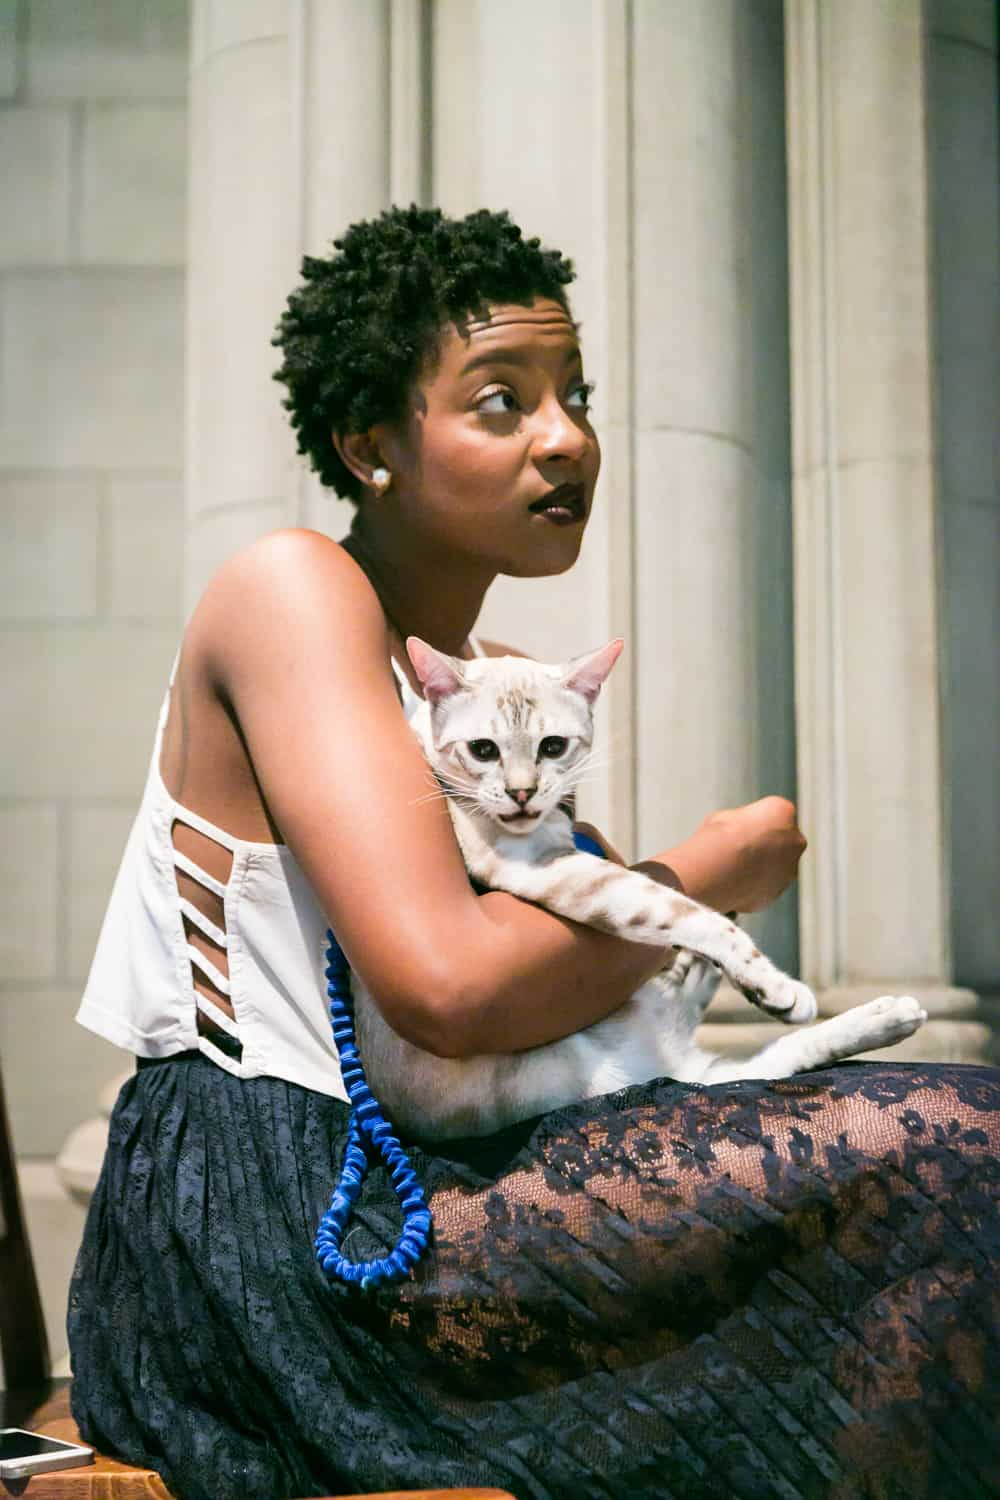 Maid of honor holding cat for an article on tips for including your pet in your wedding